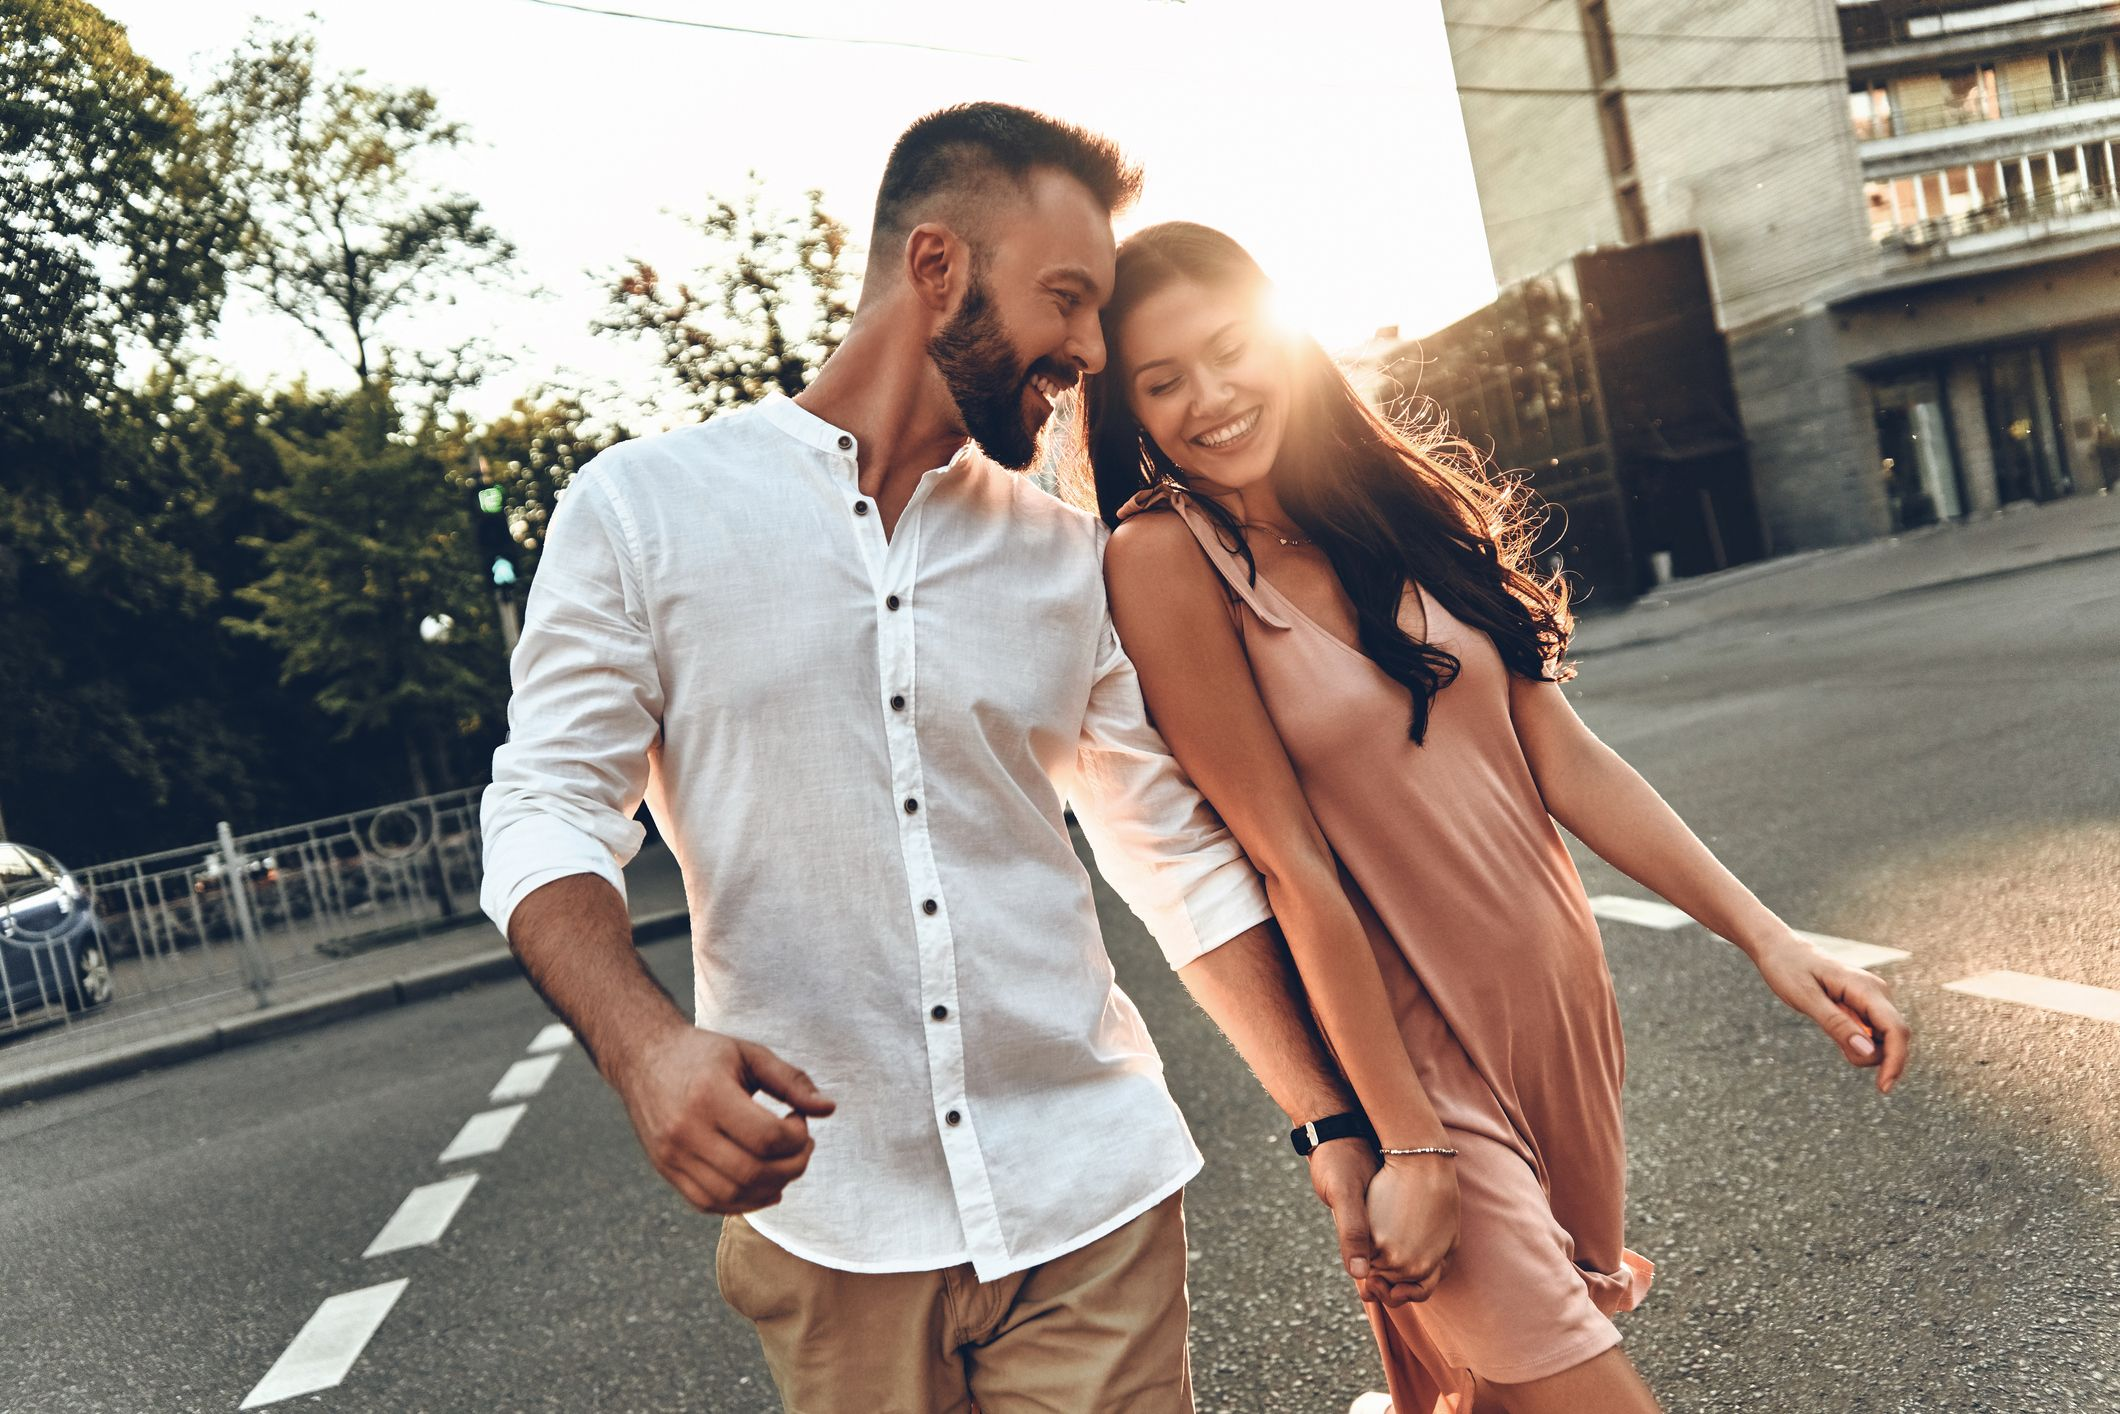 Infatuation love and dating